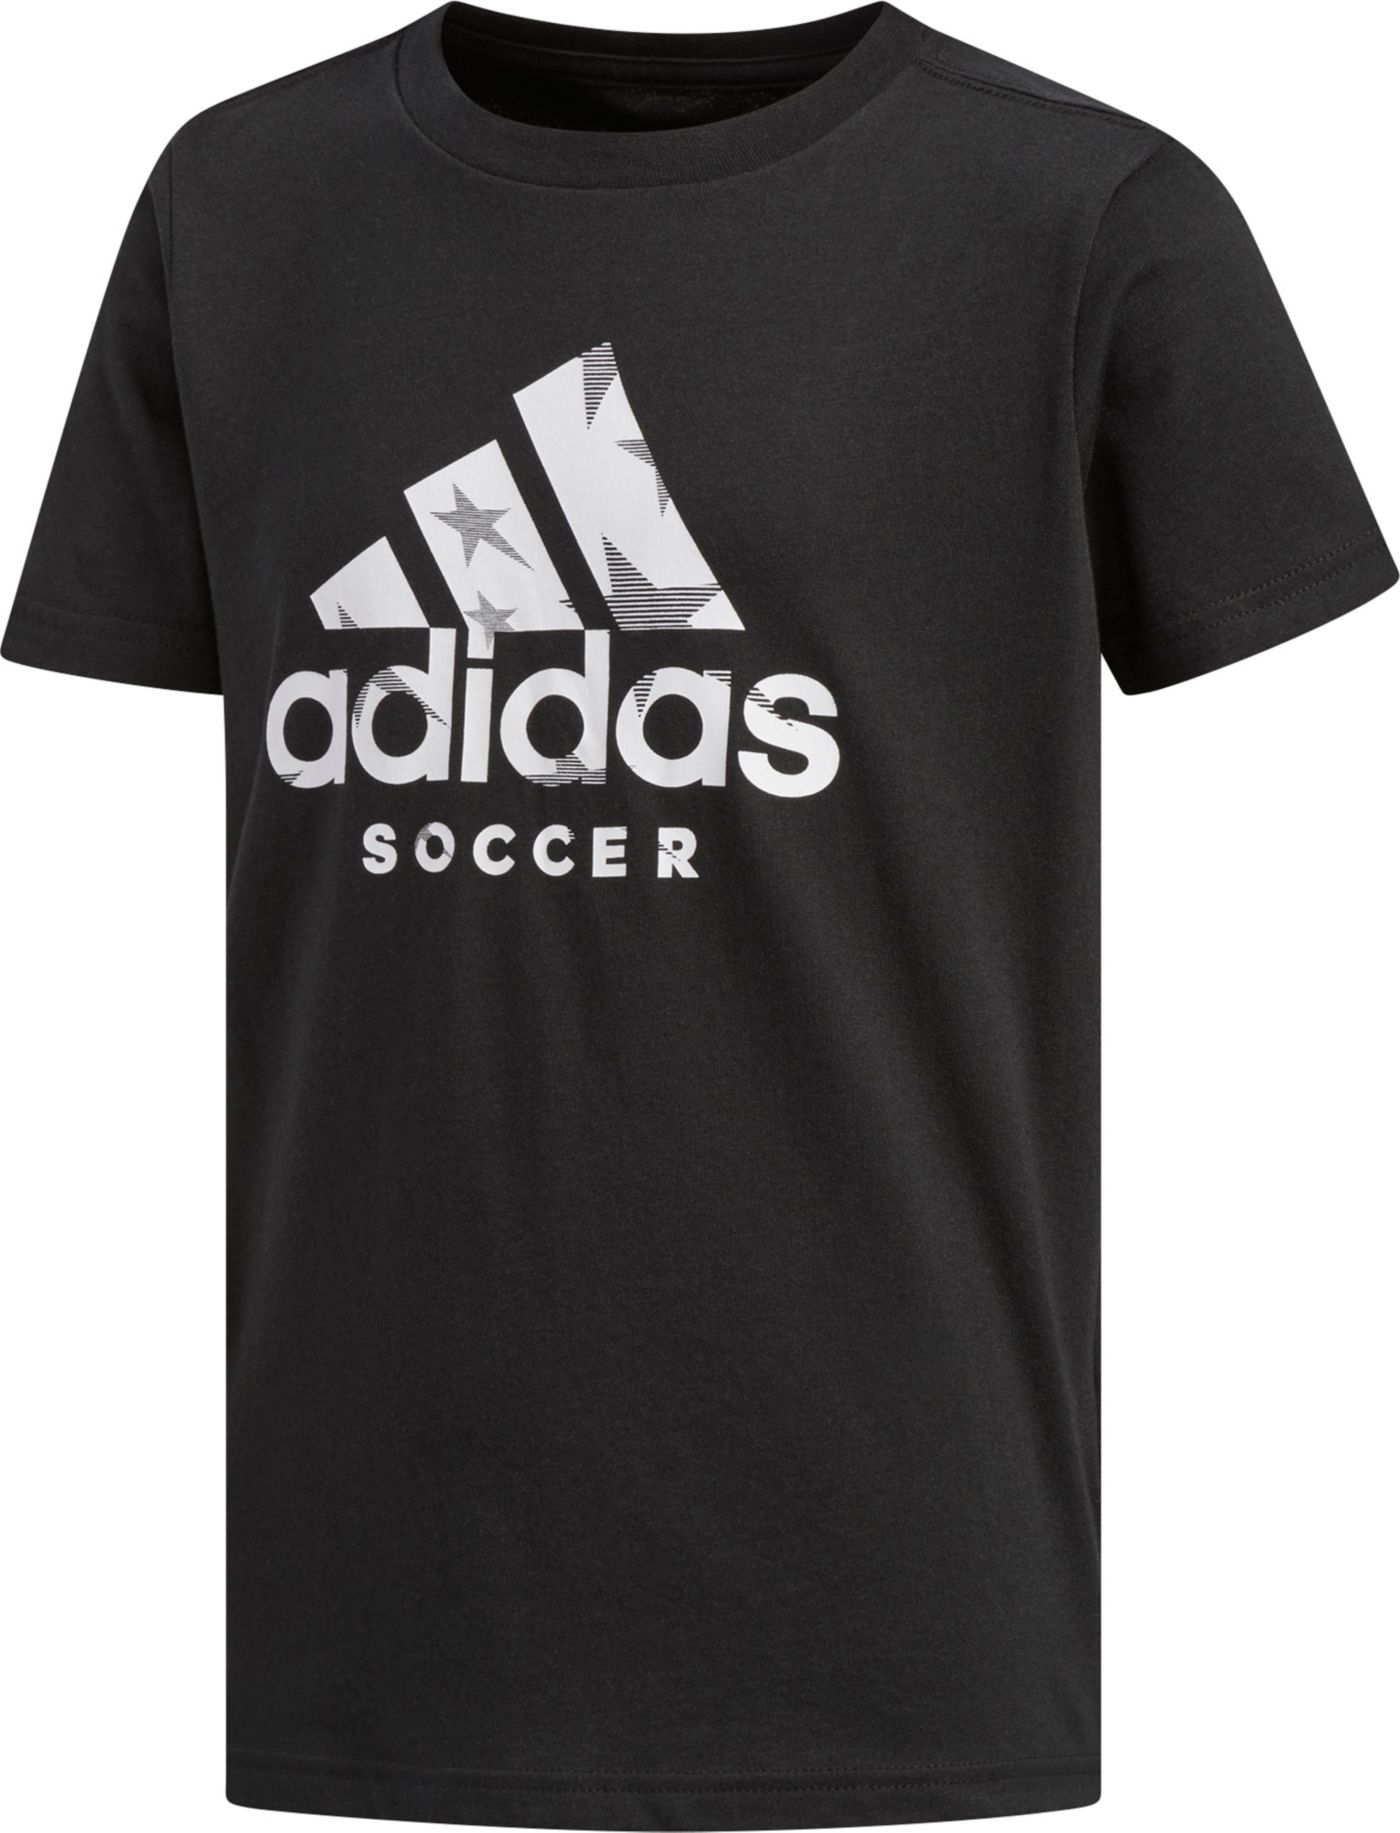 adidas Boy's Badge Of Sports Soccer T-Shirt